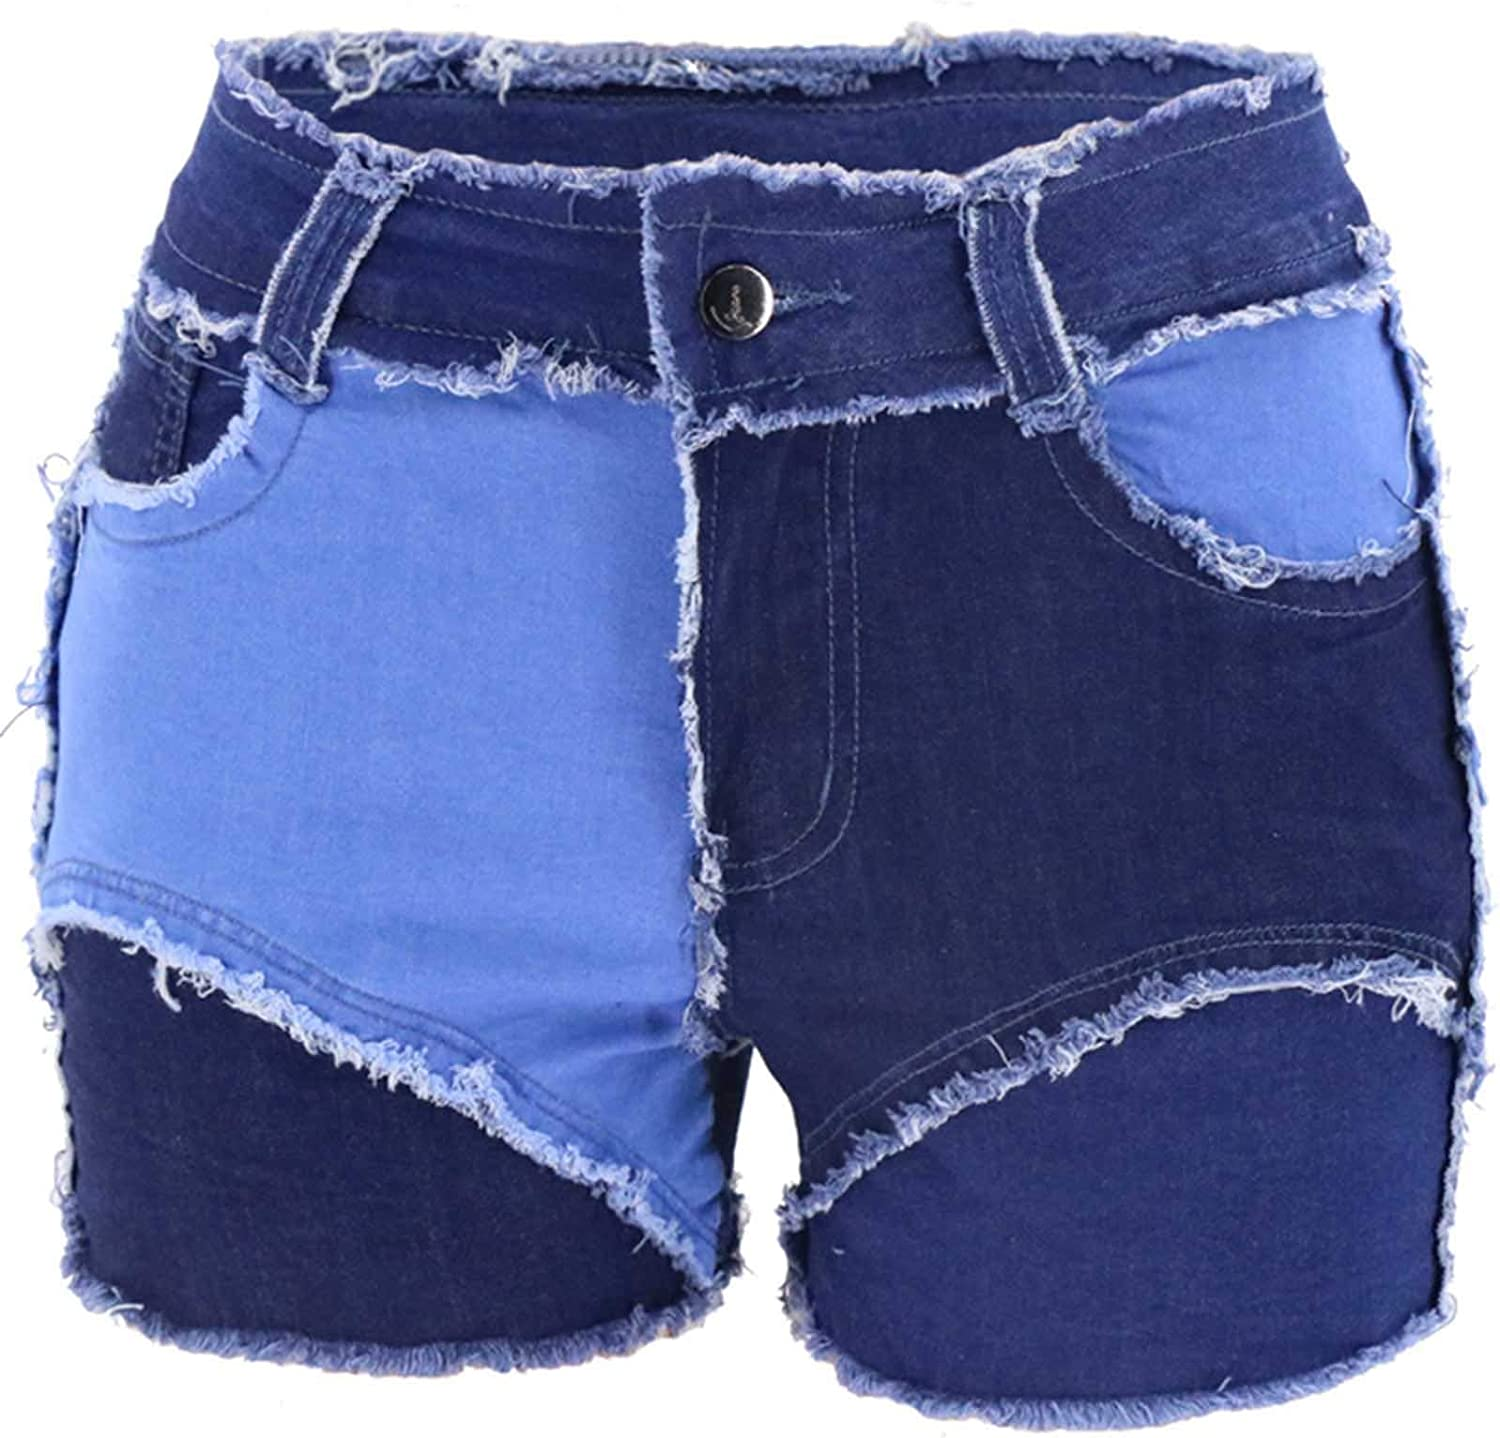 Women's Casual Splicing Pockets Sexy Personality Jeans Ultra-Short Denim Shorts